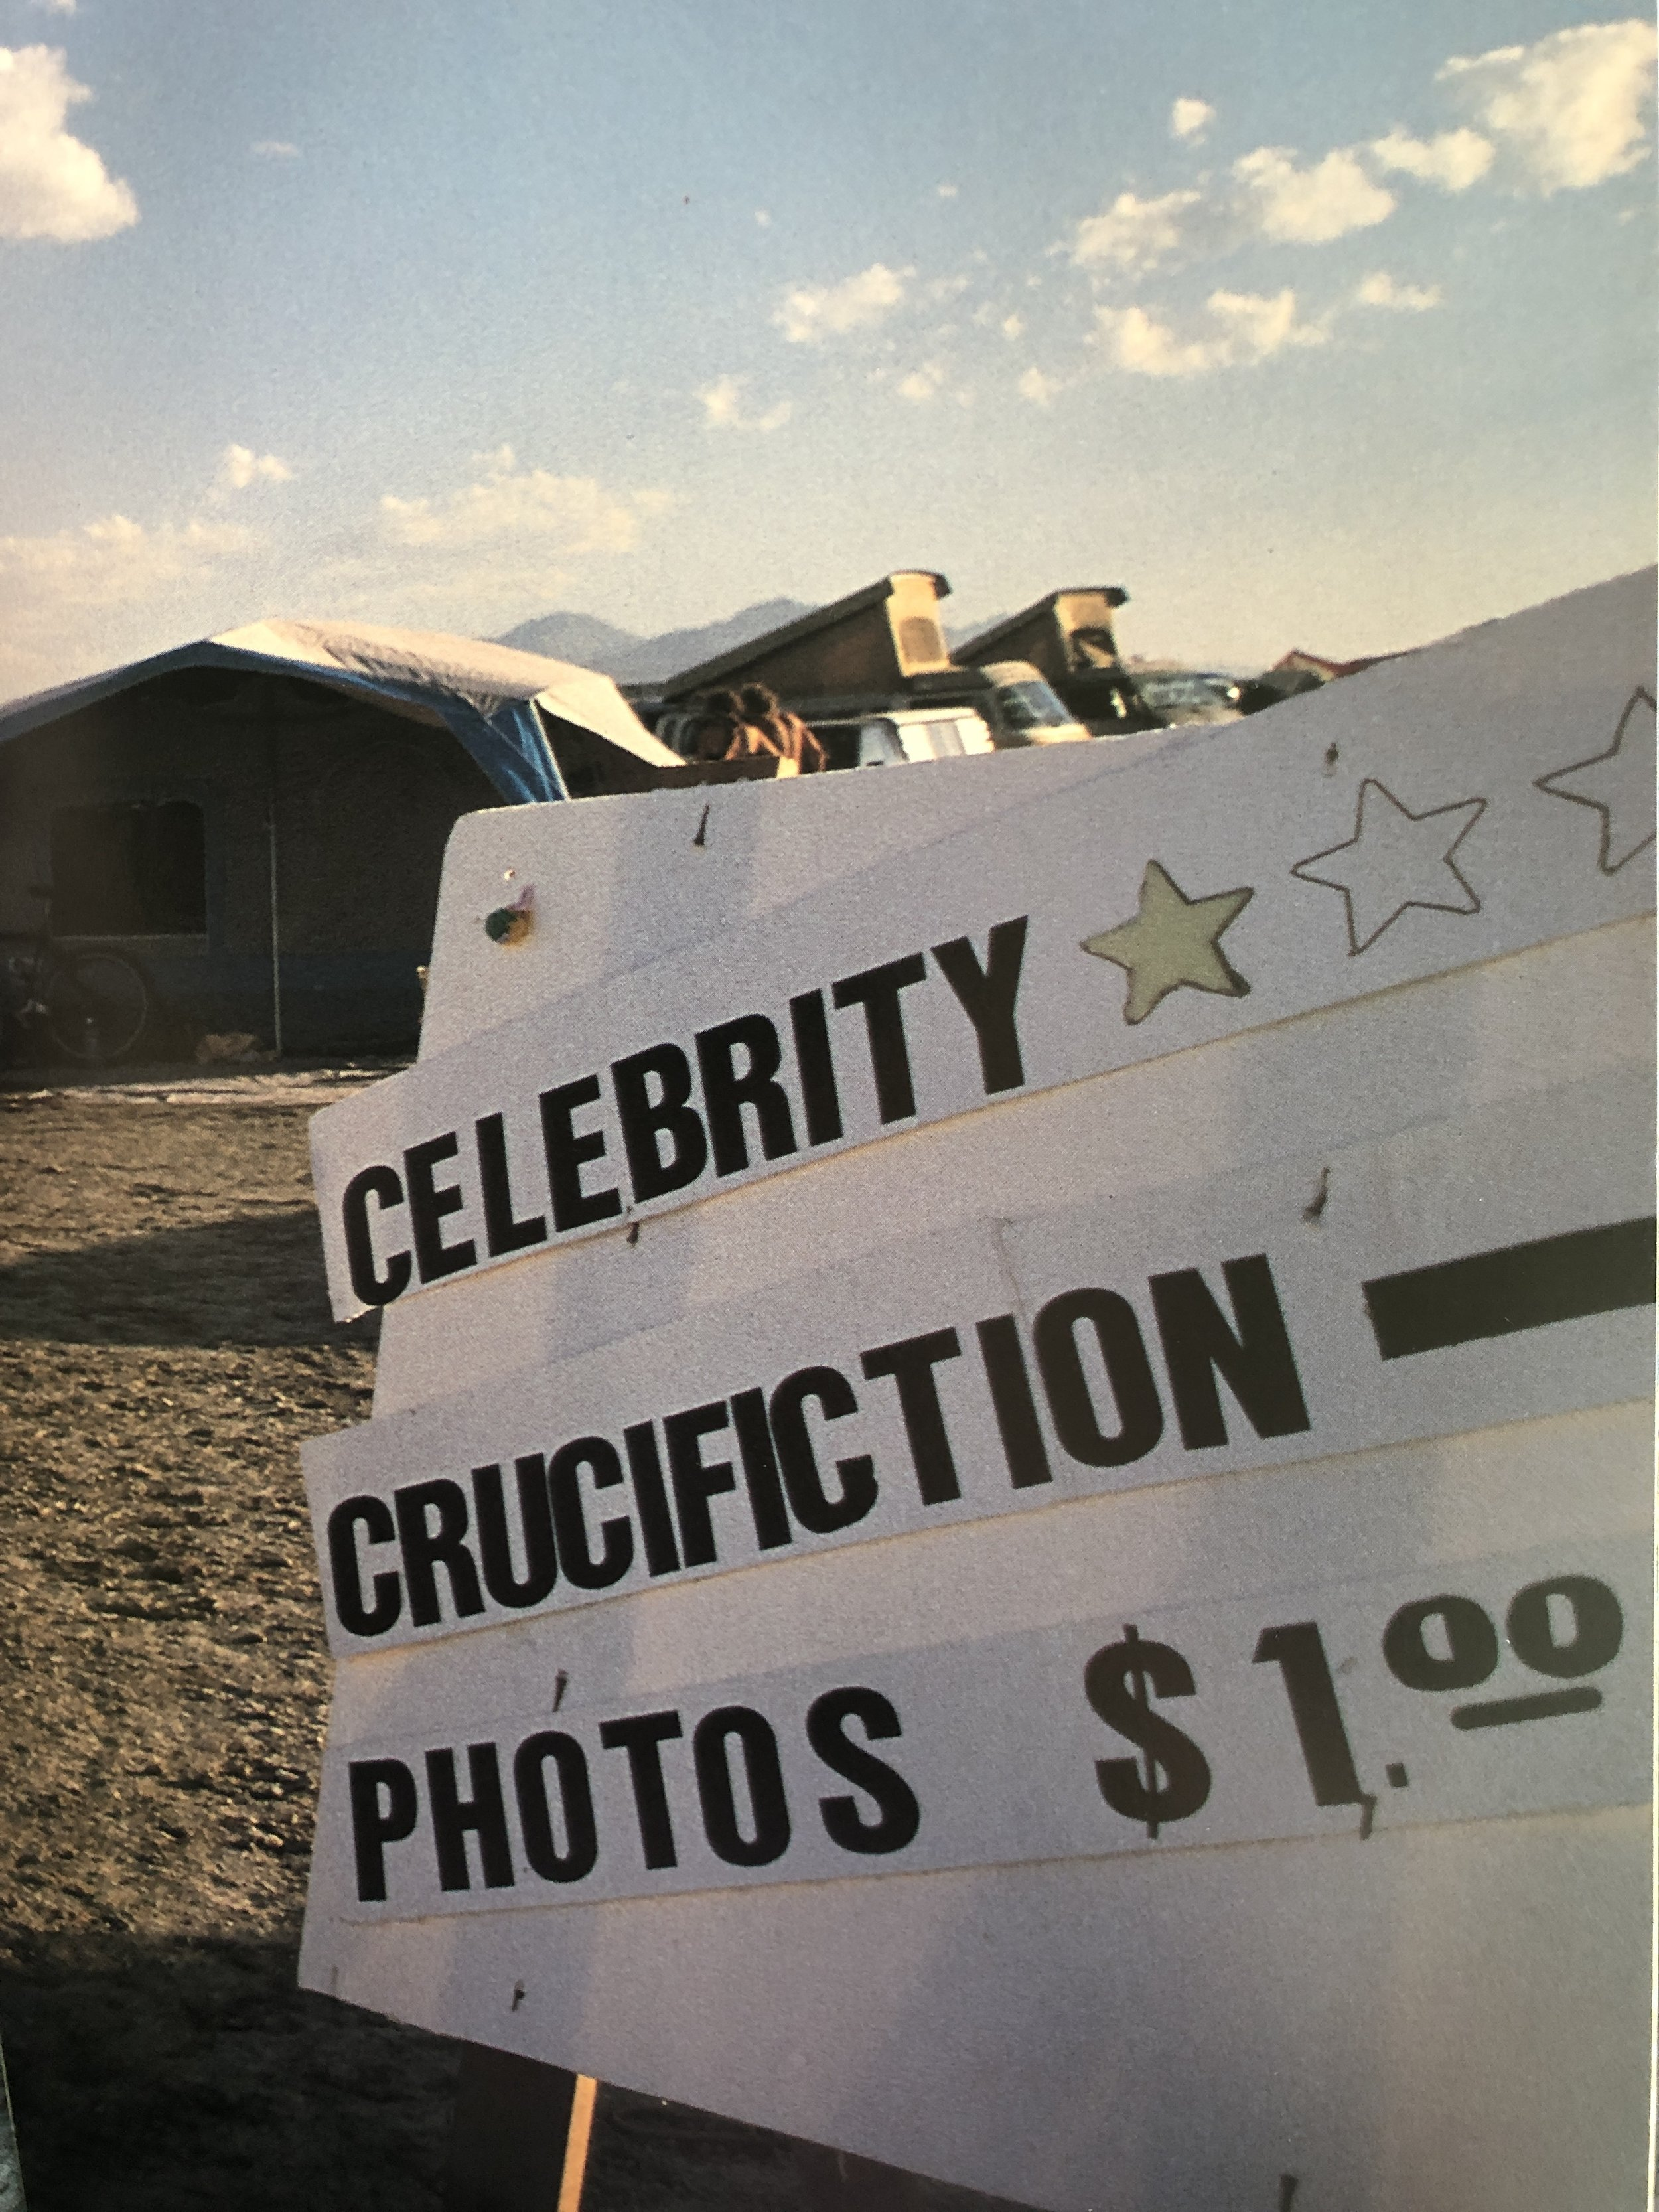 1995 celebrity crucifiction 2 of 2.JPG